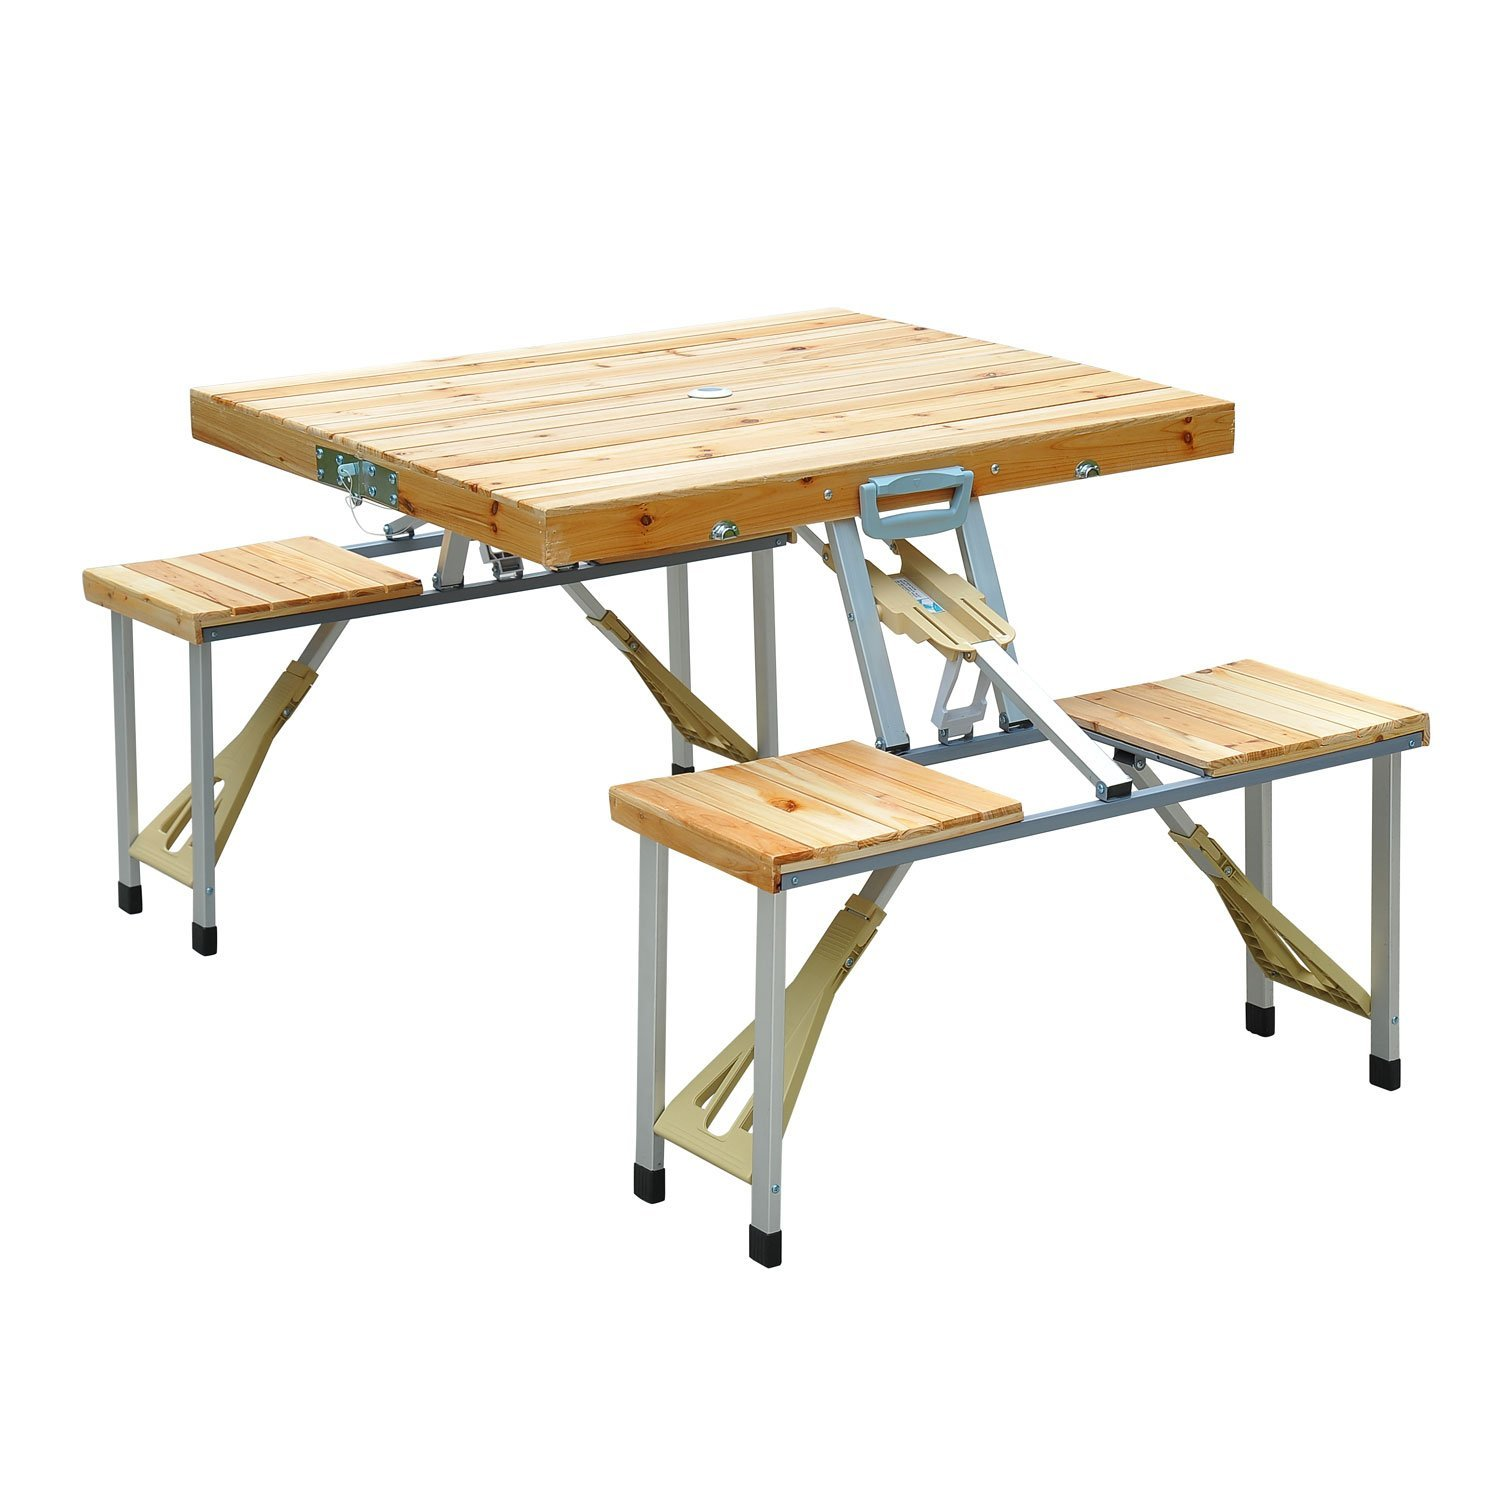 Outsunny Portable Wooden Dining Picnic Table Chair Set Folding Junior Outdoor Travel Use Outdoor Recreation Aosom Canada